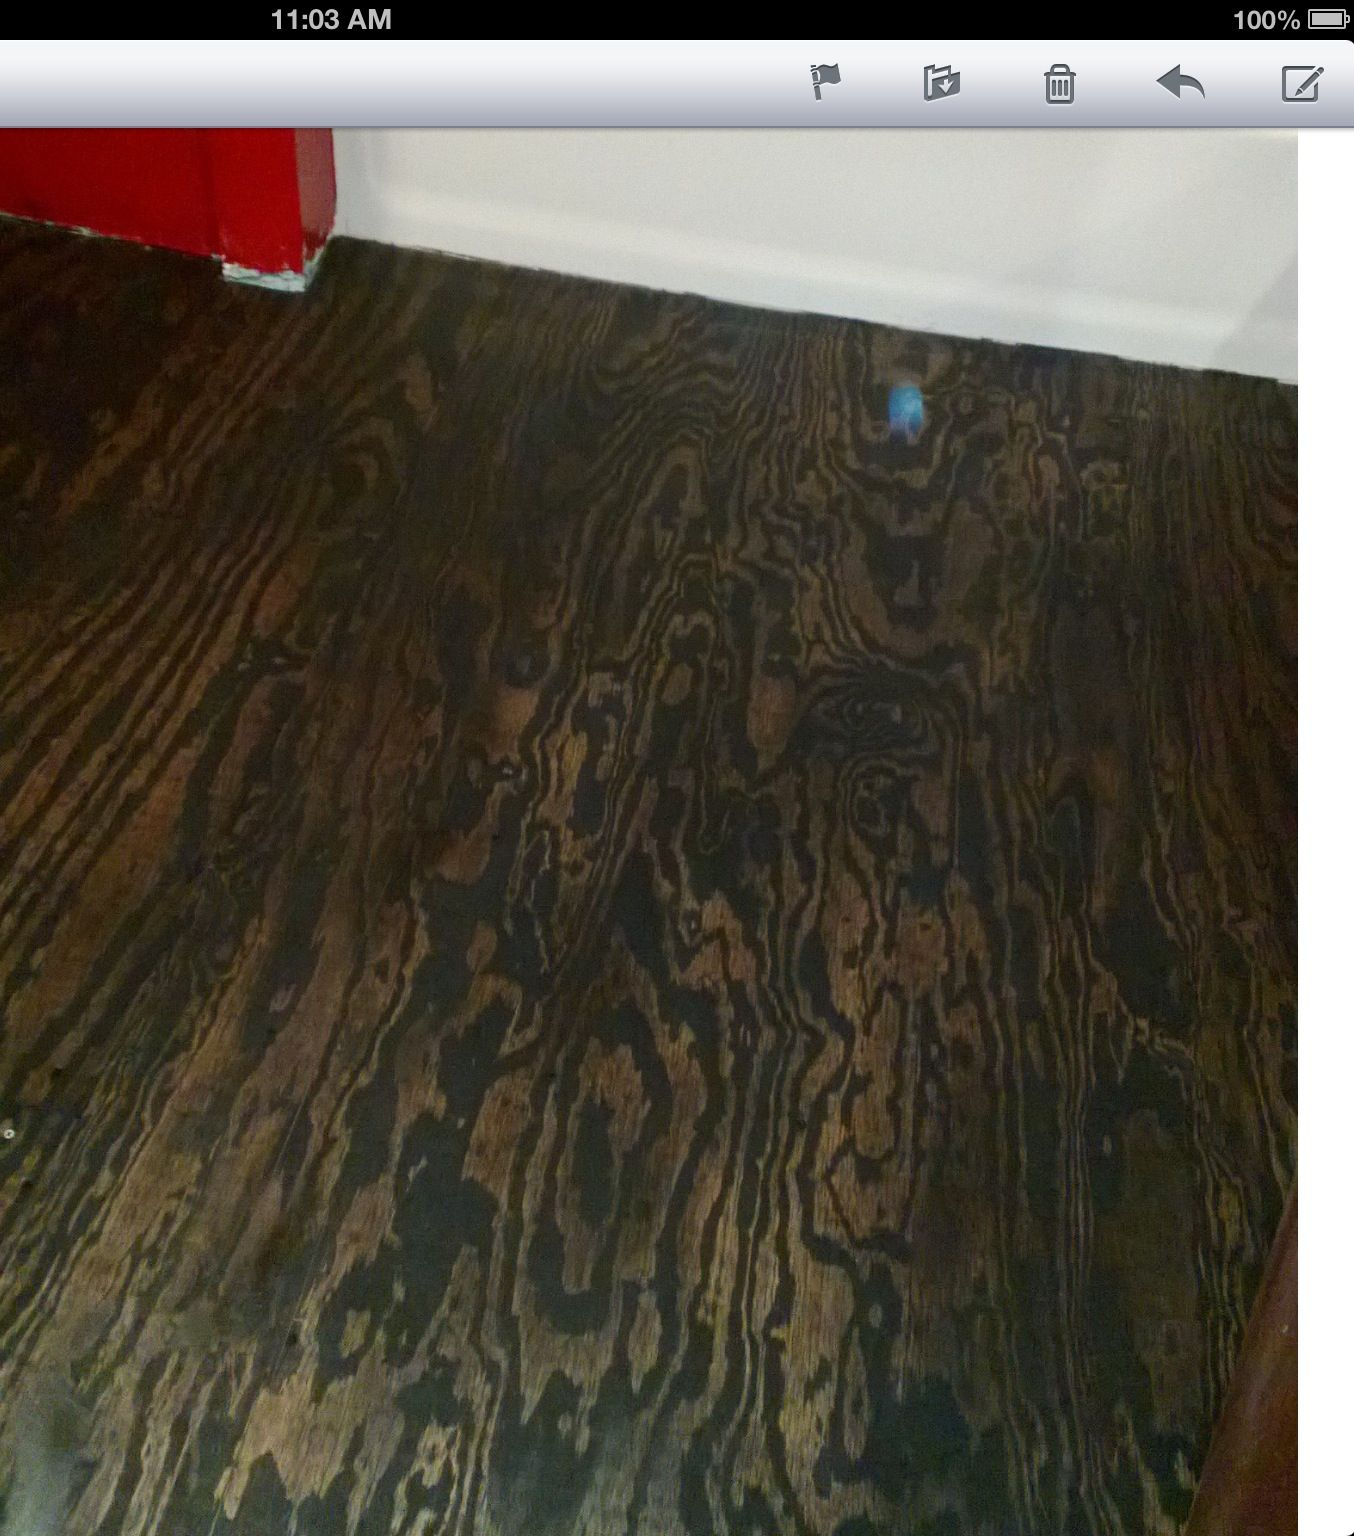 Plywood Floor Stained I Did One Coat Of Black Stain I Did Not Wipe It Down You Will Get A Major Zebra Effect Stained Plywood Floors Plywood Floor Flooring